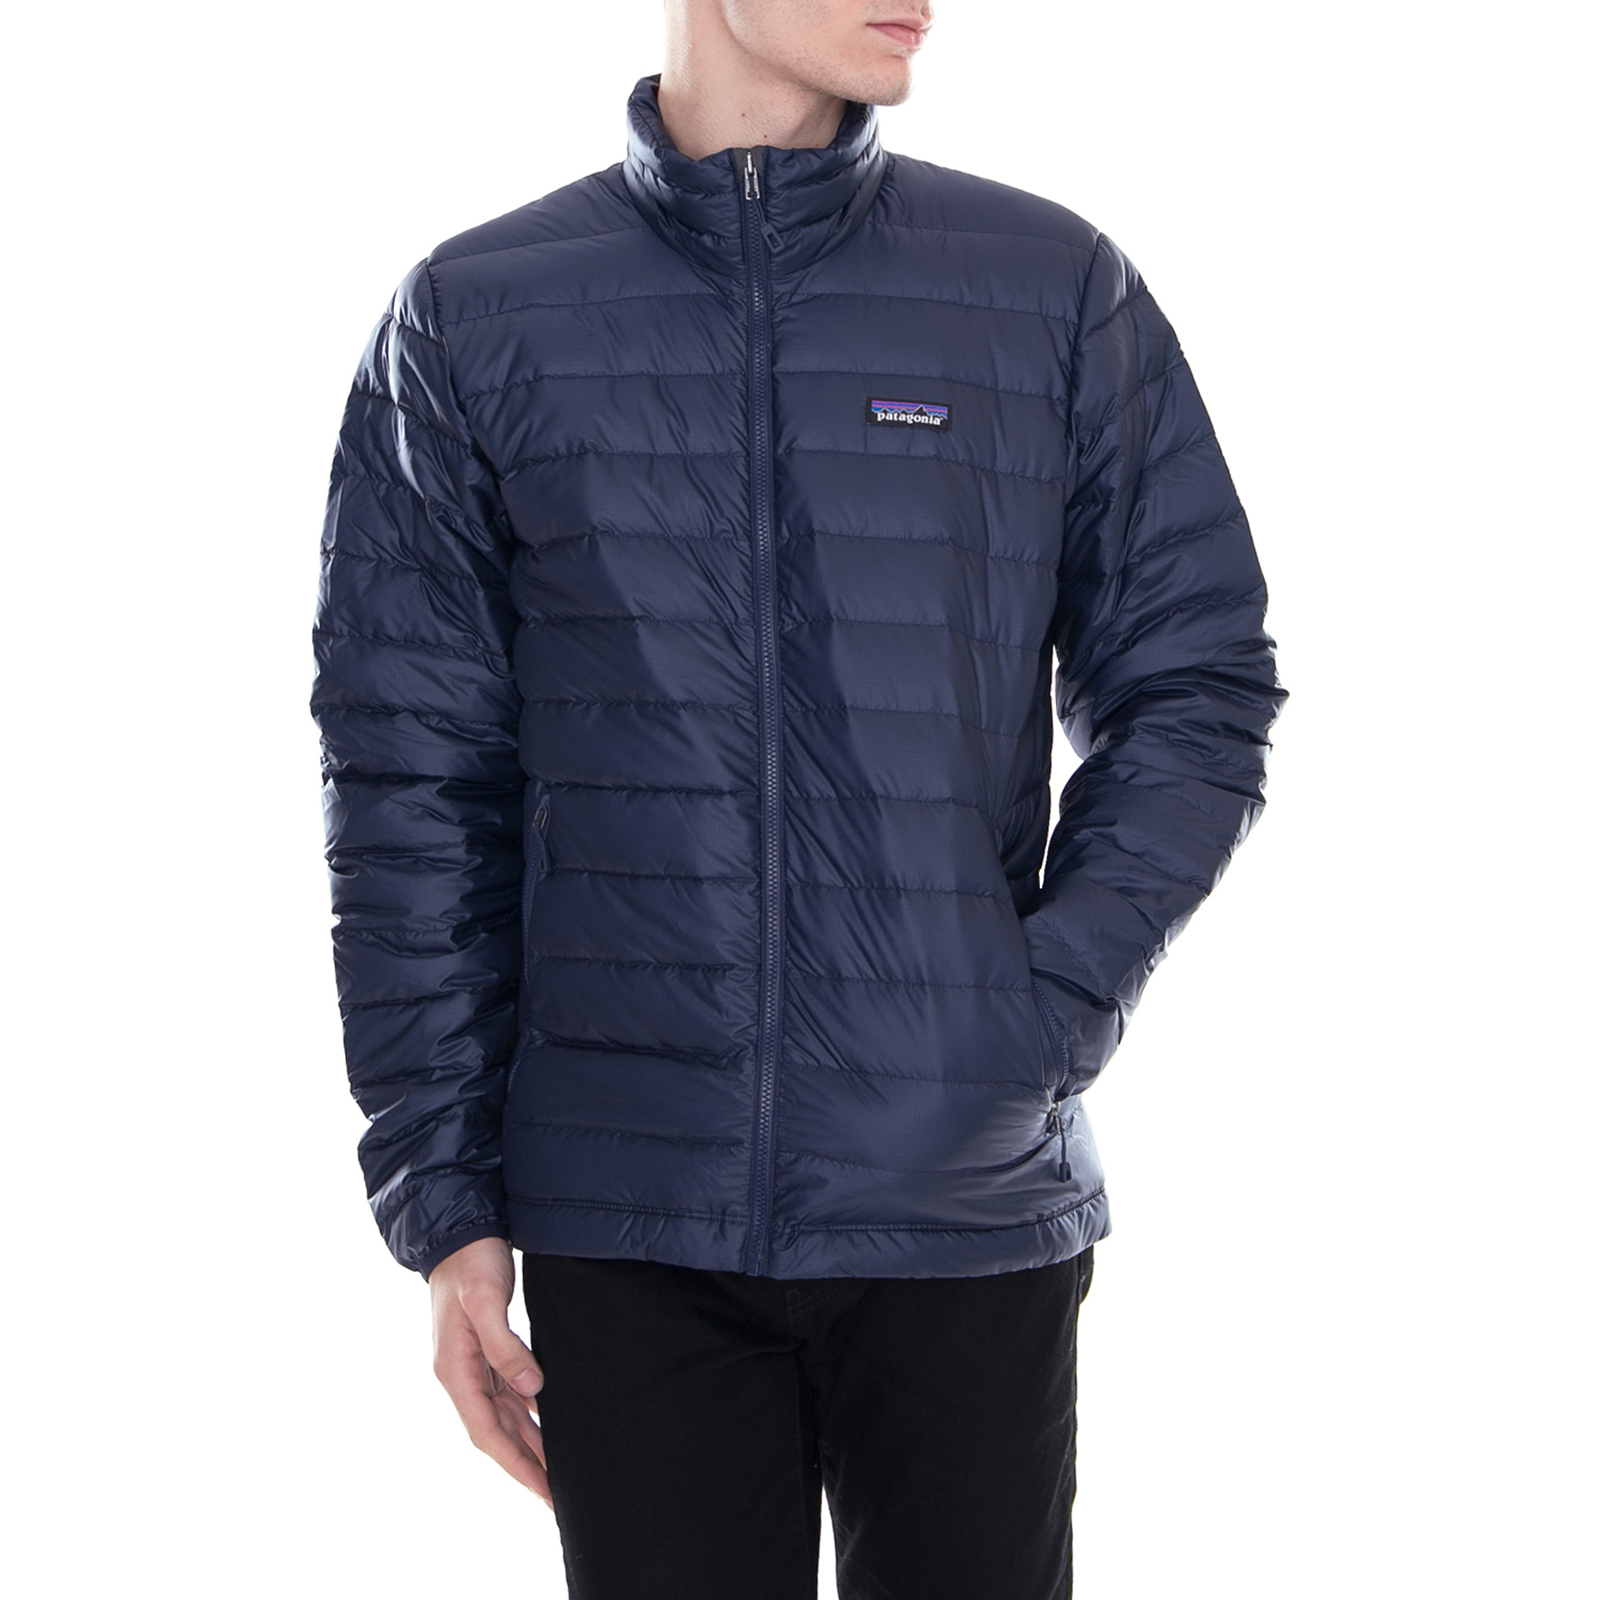 buy popular 83e51 46692 Details about Patagonia Jacket down Sweater Jacket Navy Blue Blue